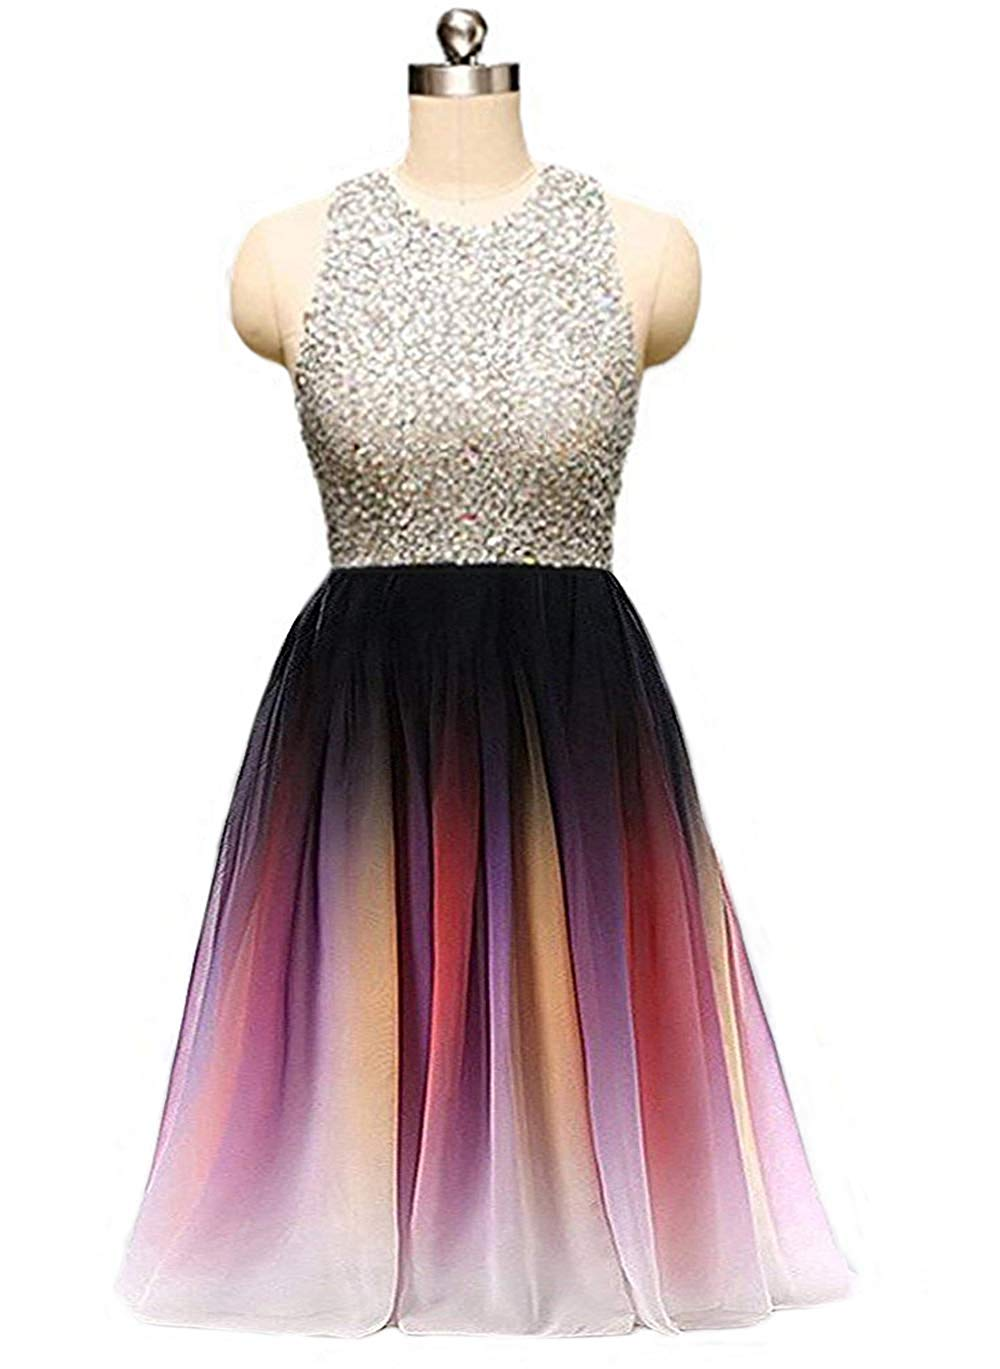 2019 A-Line Ombre Mini Homecoming Dresses Short Chiffon Prom Gown Gradient Formal Beaded Cocktail Dress